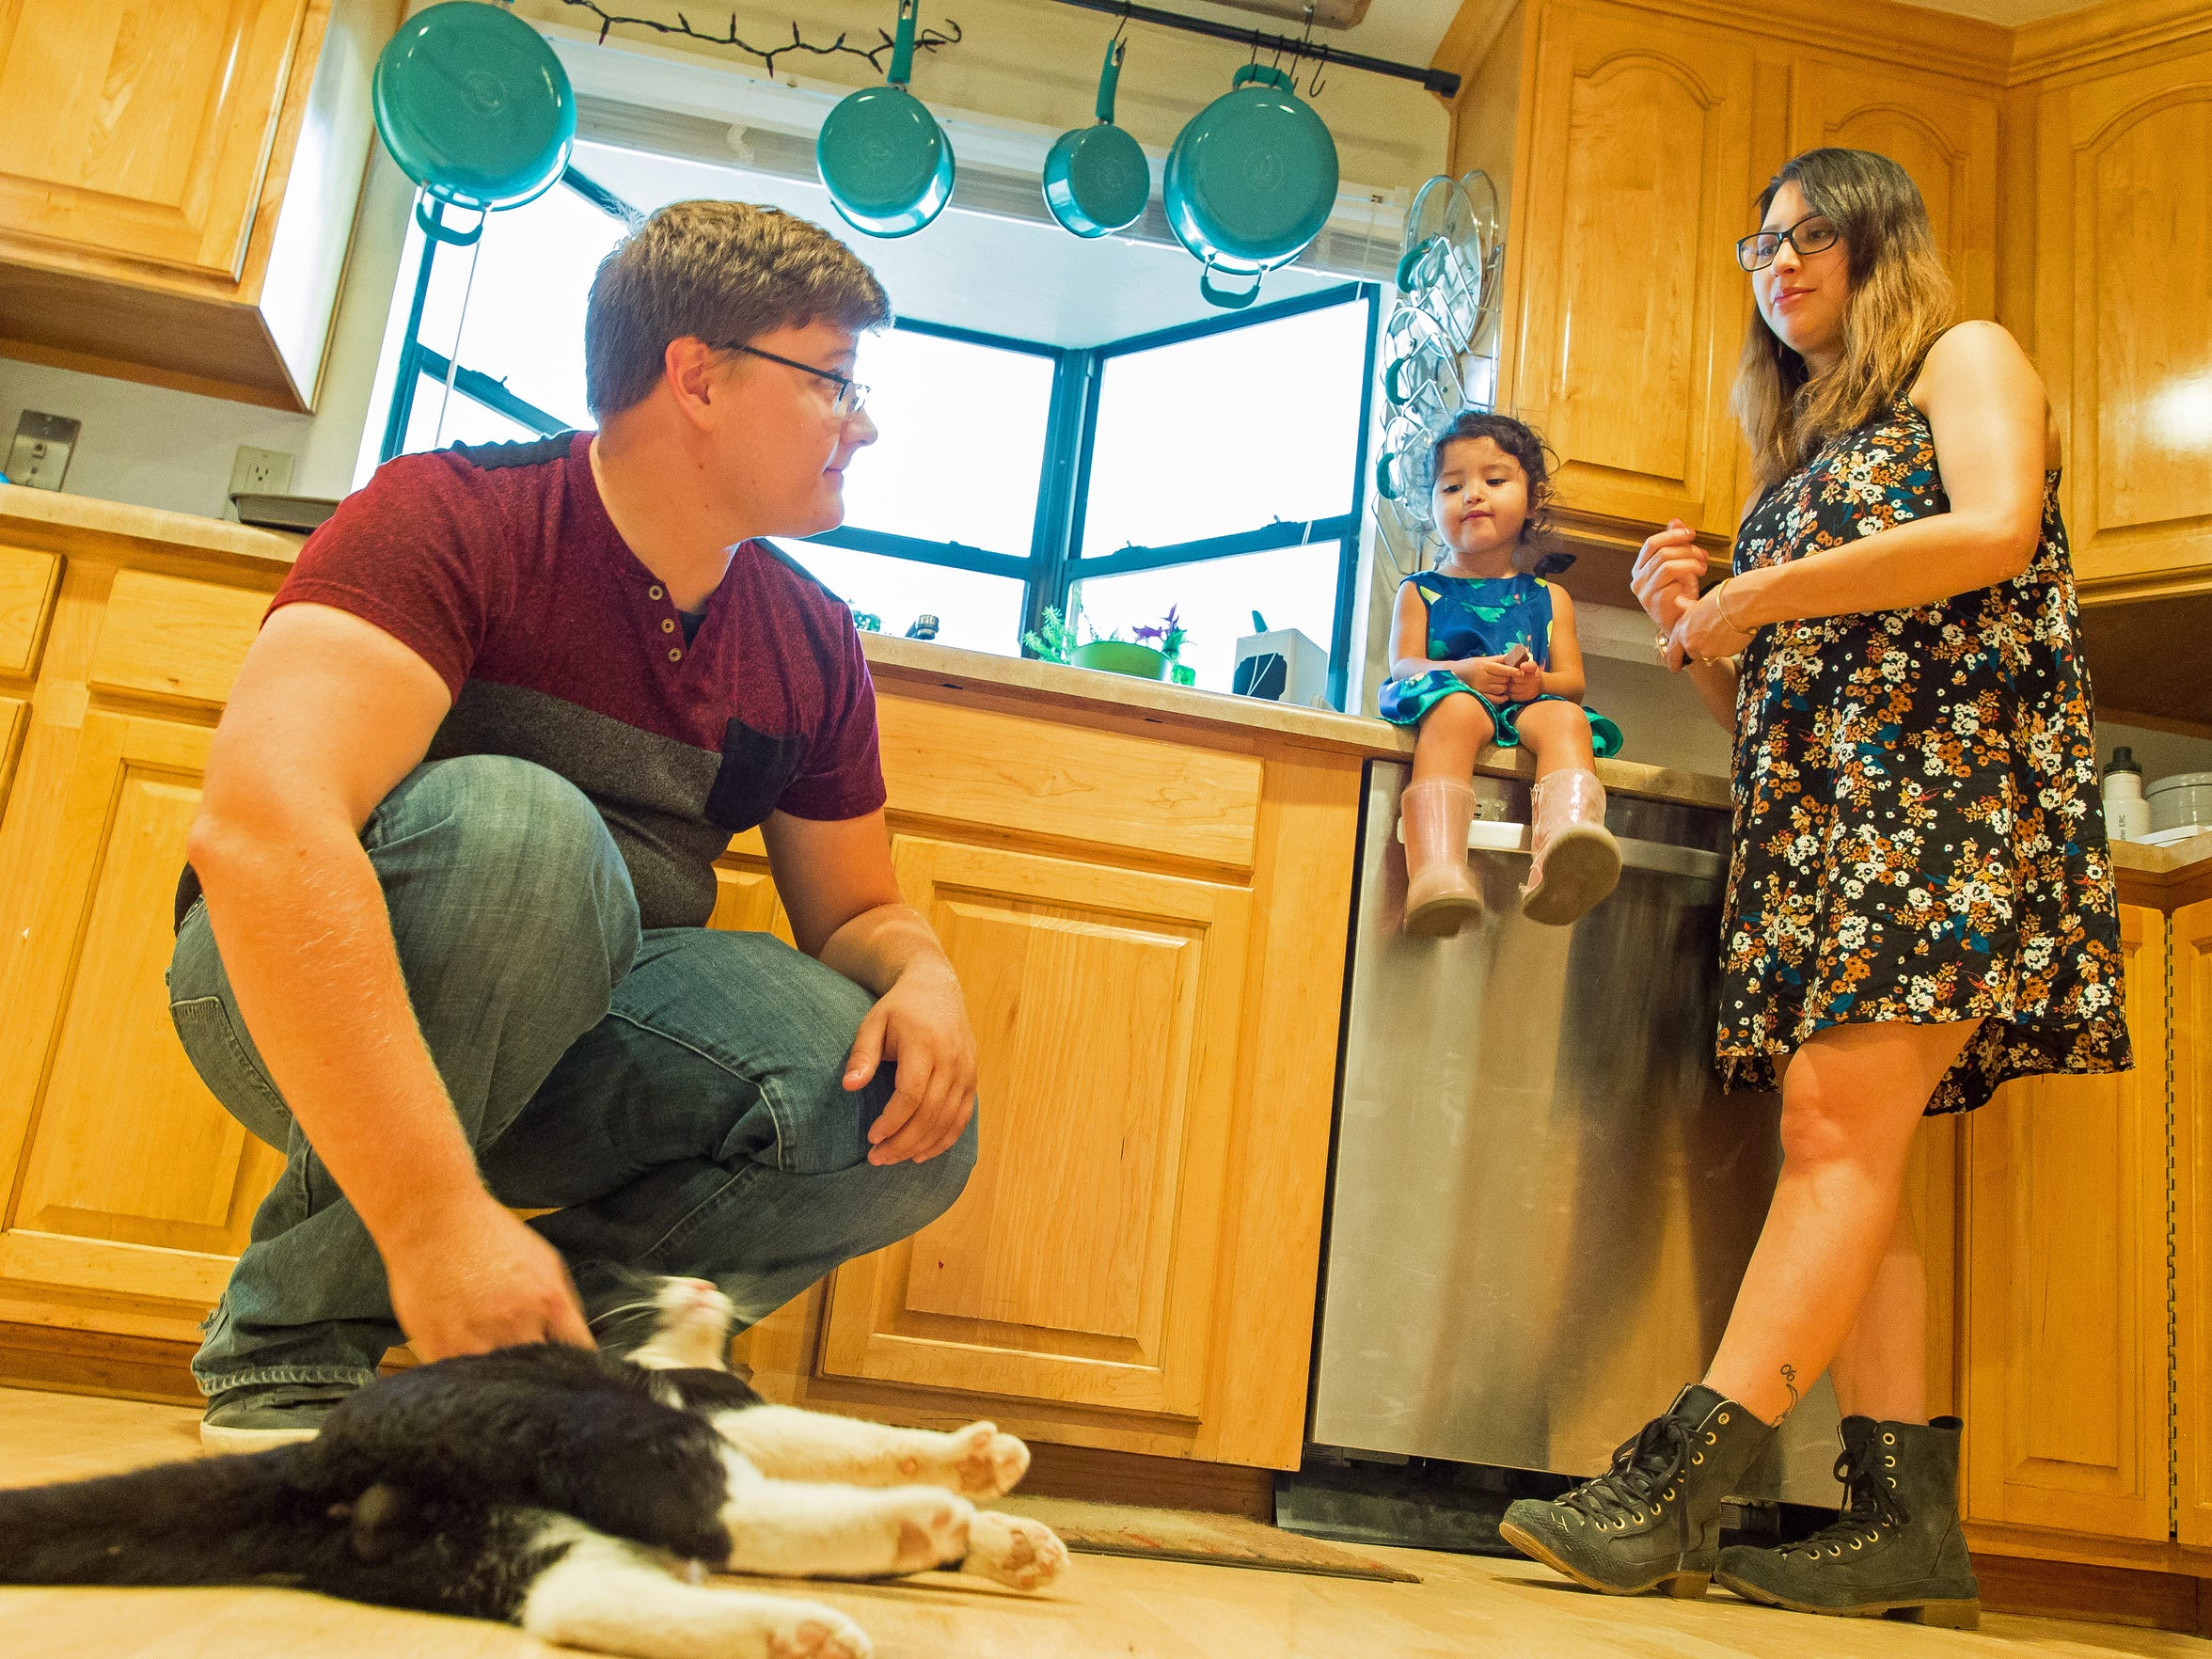 Zach Eason, 20, Luz Skywalker, 21, their daughter Luna, hang out with Charlie, the cat, in the kitchen of Zach's home on Tuesday.